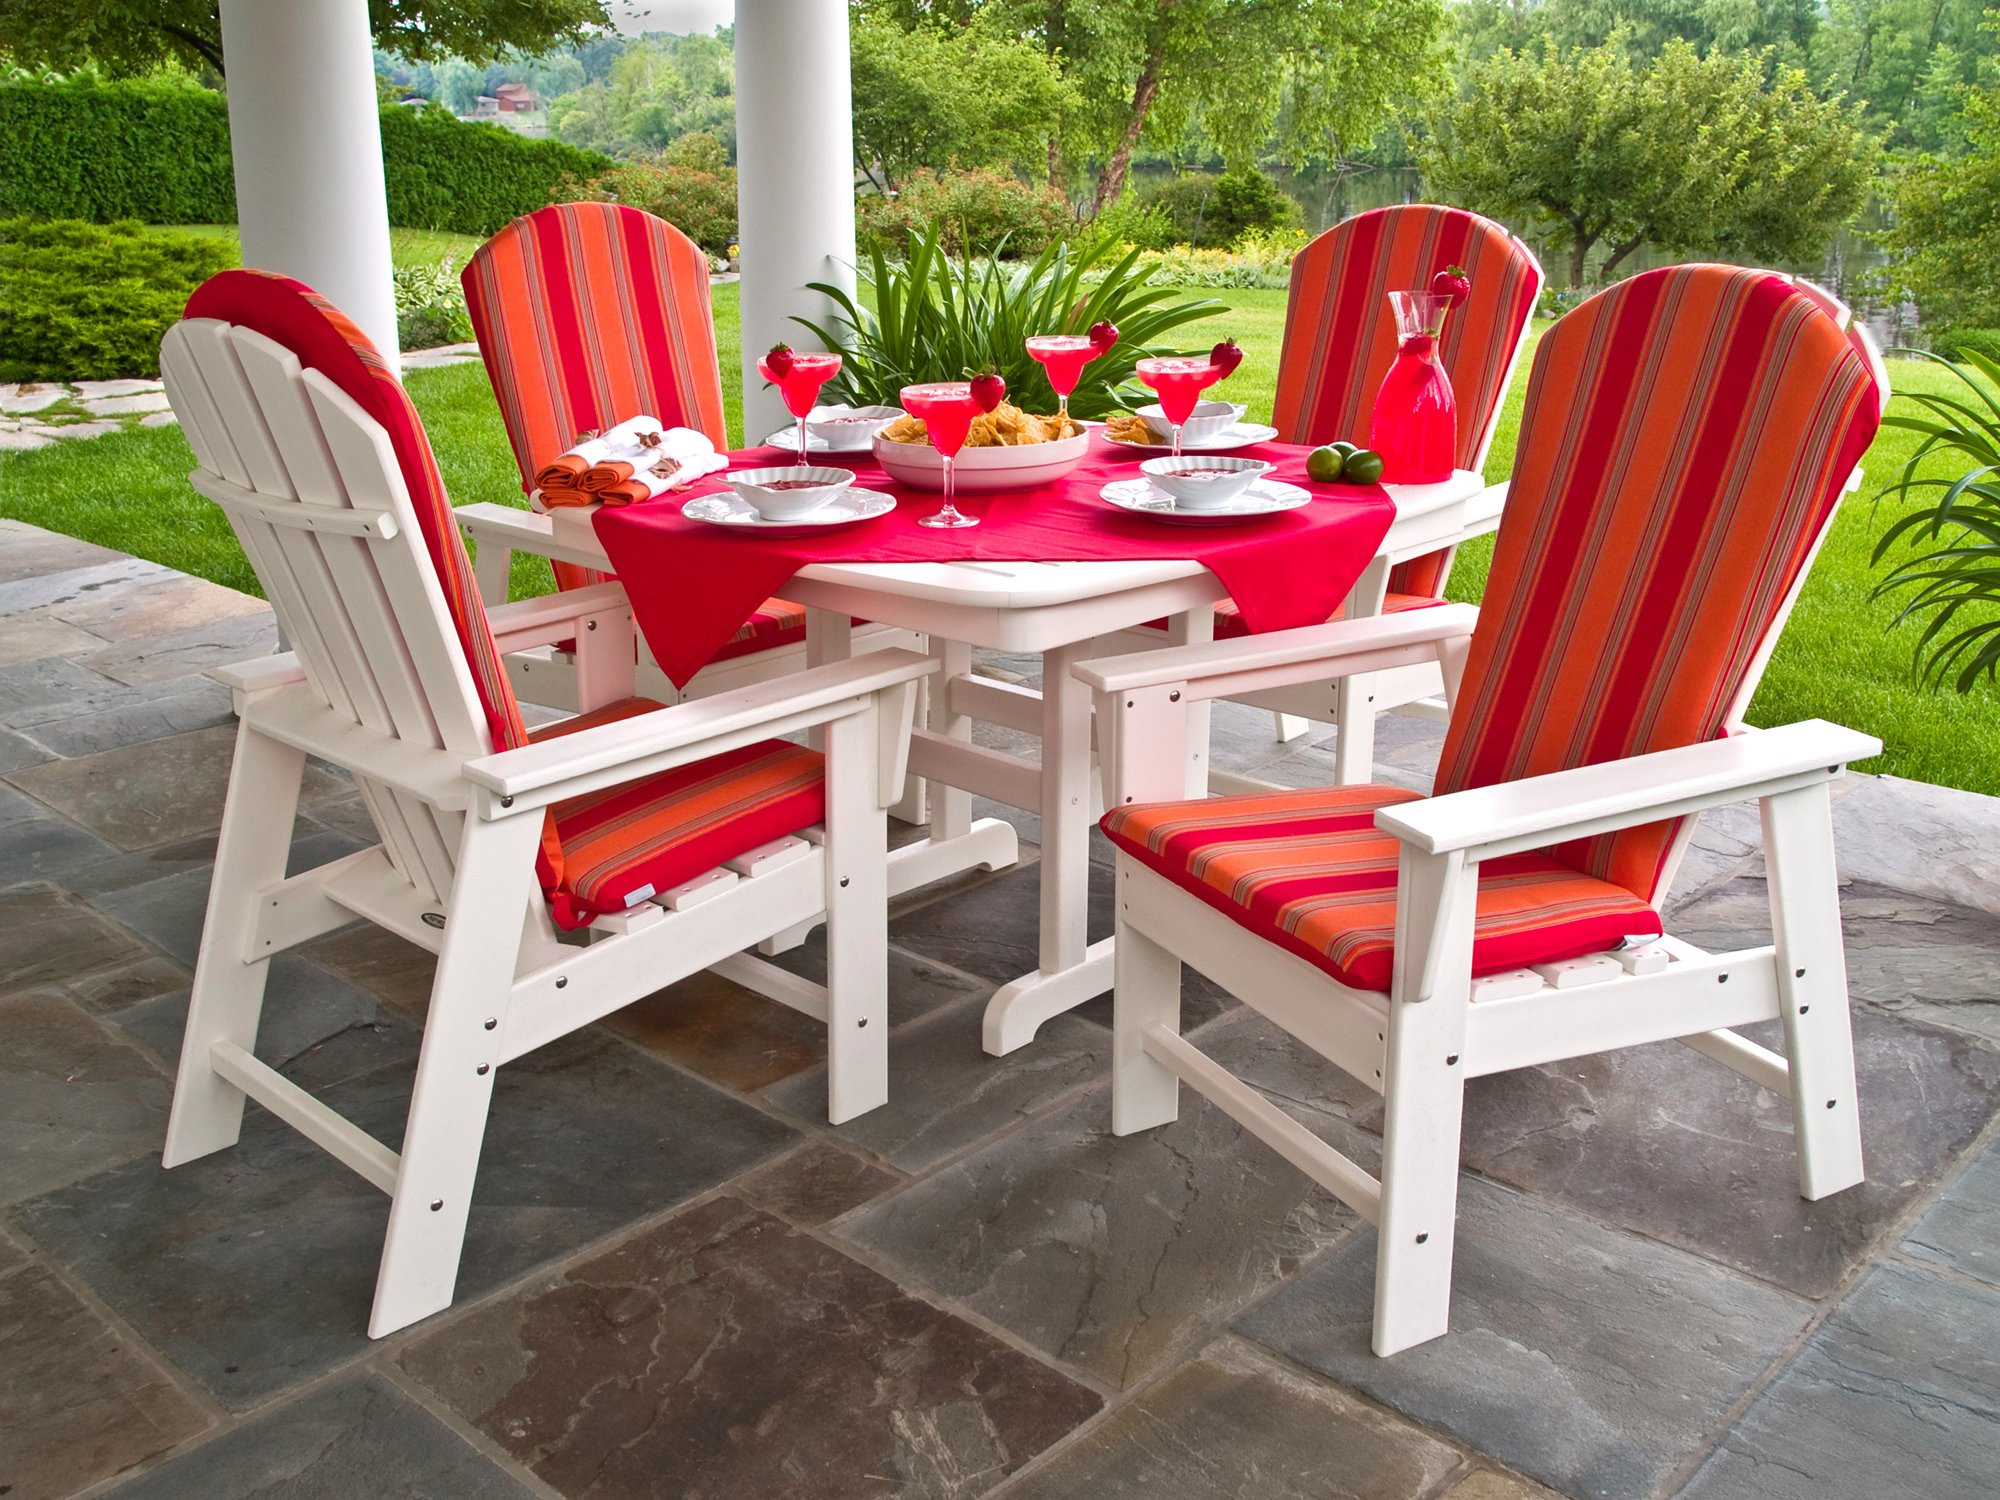 Top 10 Patio Dining Sets For 2013